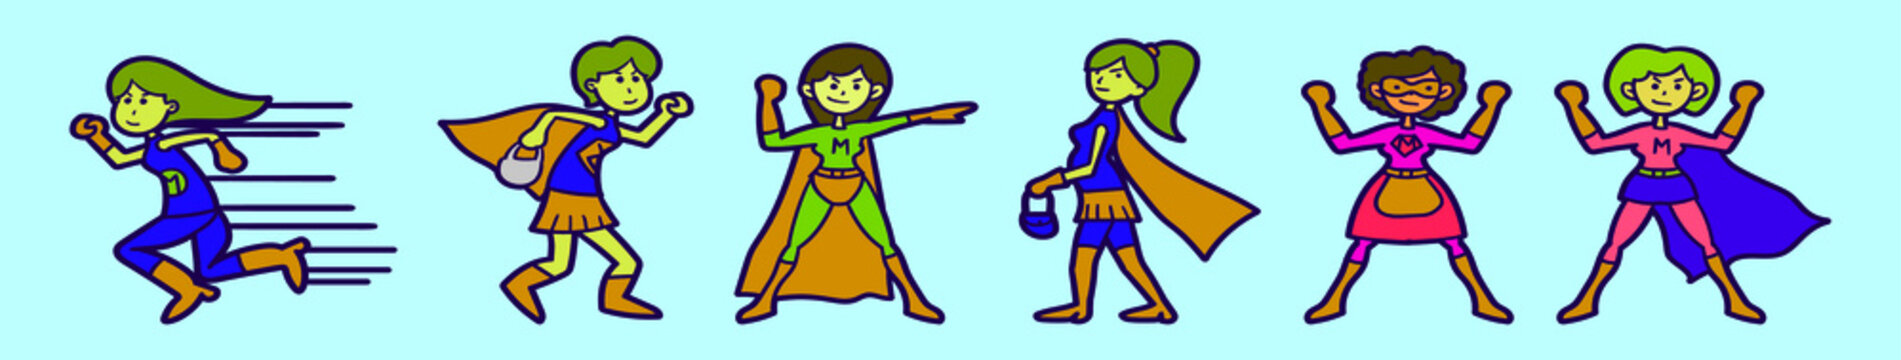 set of supermom cartoon icon design template with various models. vector illustration isolated on blue background